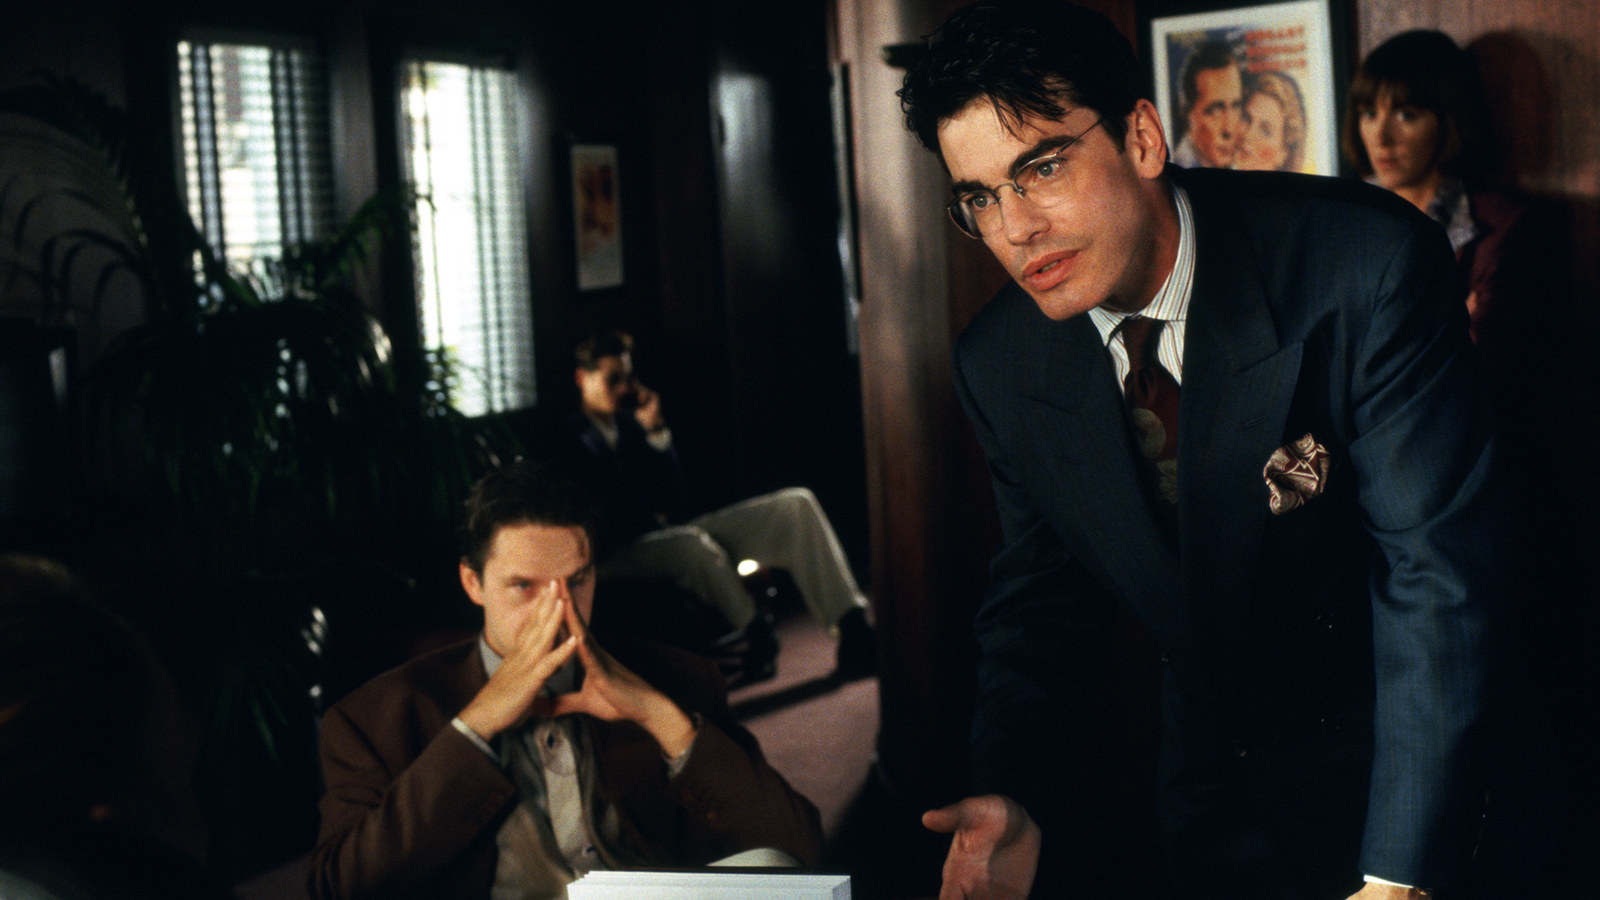 Tim Robbins and Peter Gallagher Jr. in The Player (film)